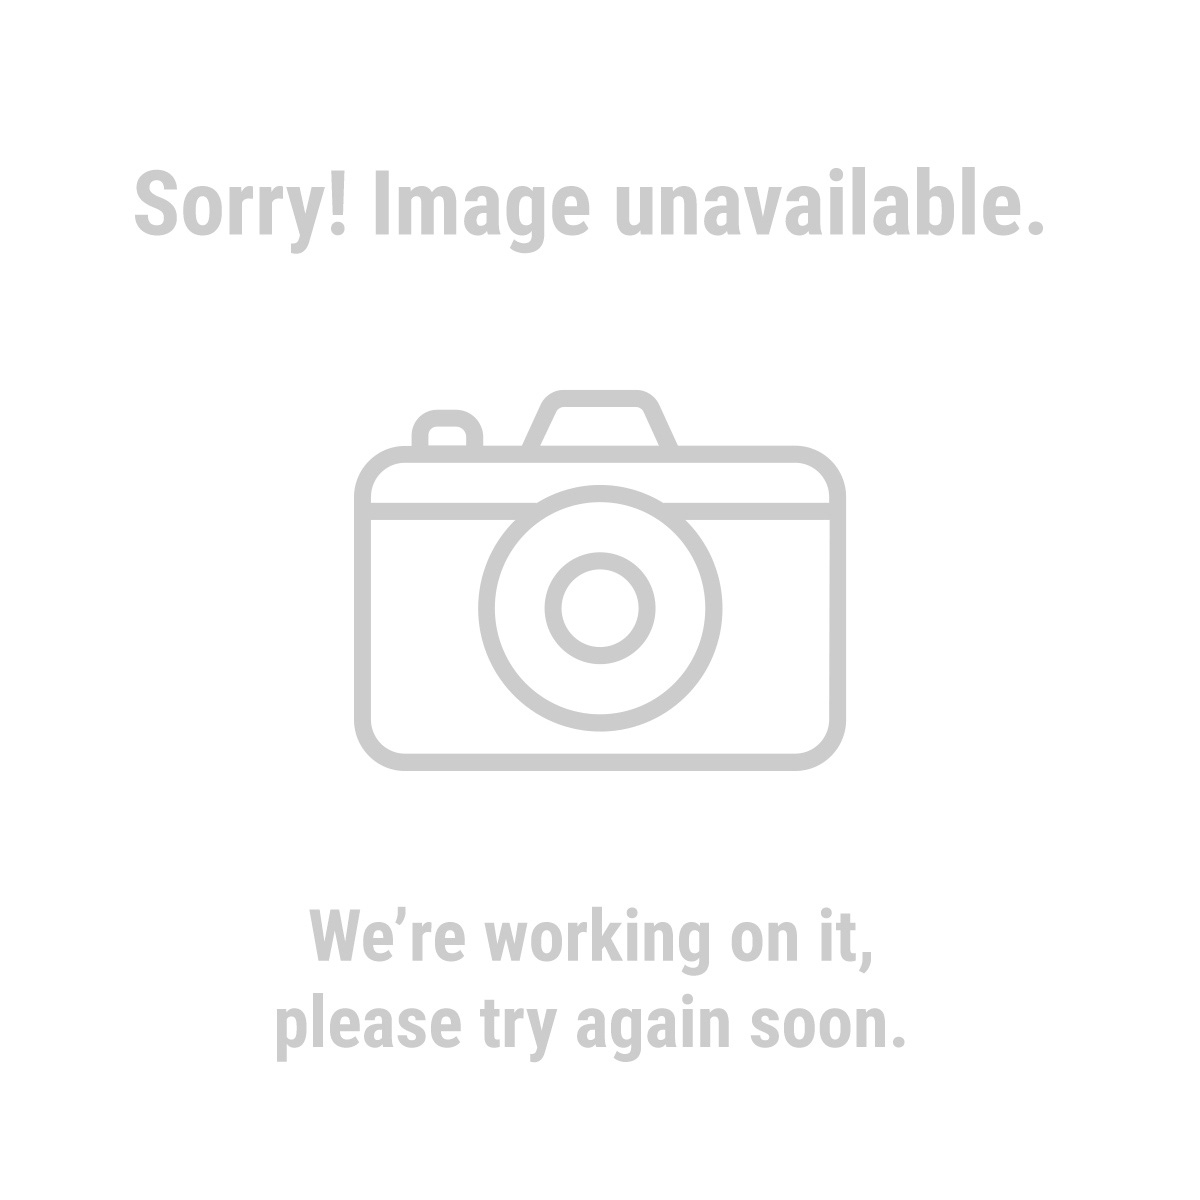 Pittsburgh® 61344 12 Piece Cushion Grip Screwdriver Set